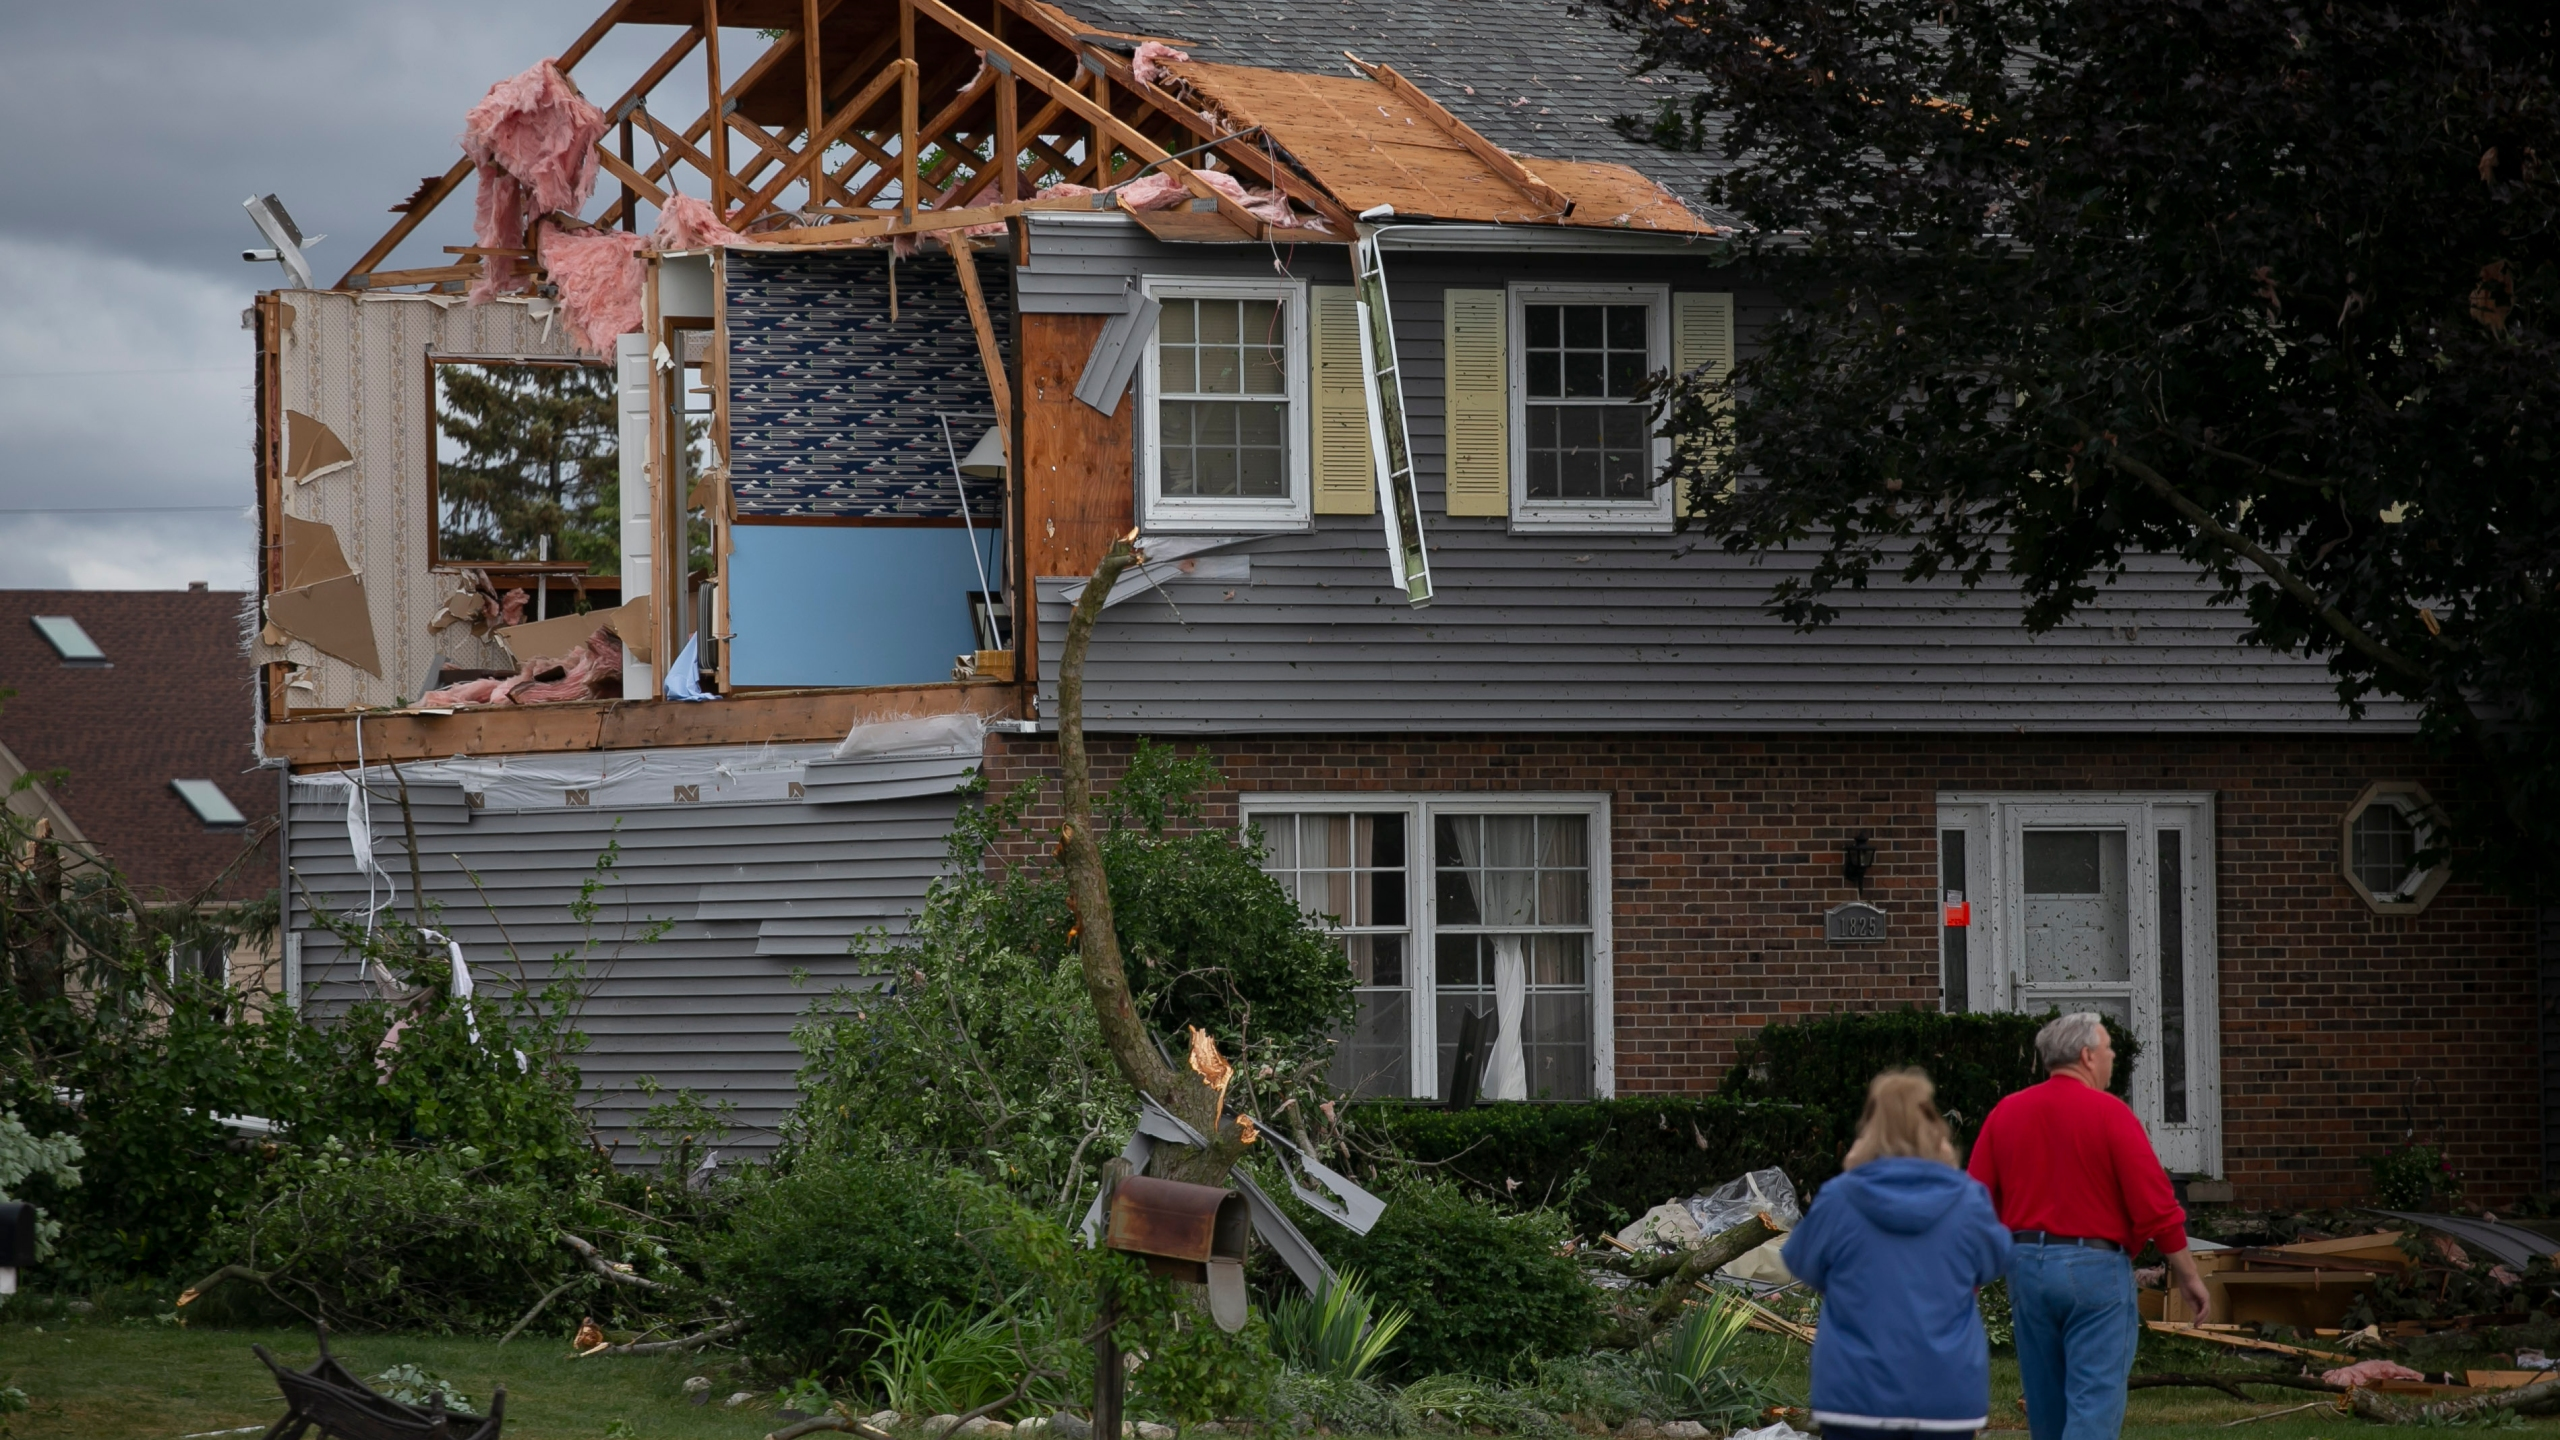 People walk near a damaged home on Princeton Circle in Naperville's Ranchview neighborhood after a tornado swept through the area, Monday, June 21, 2021, in Ill. (Rich Hein/Chicago Sun-Times via AP)